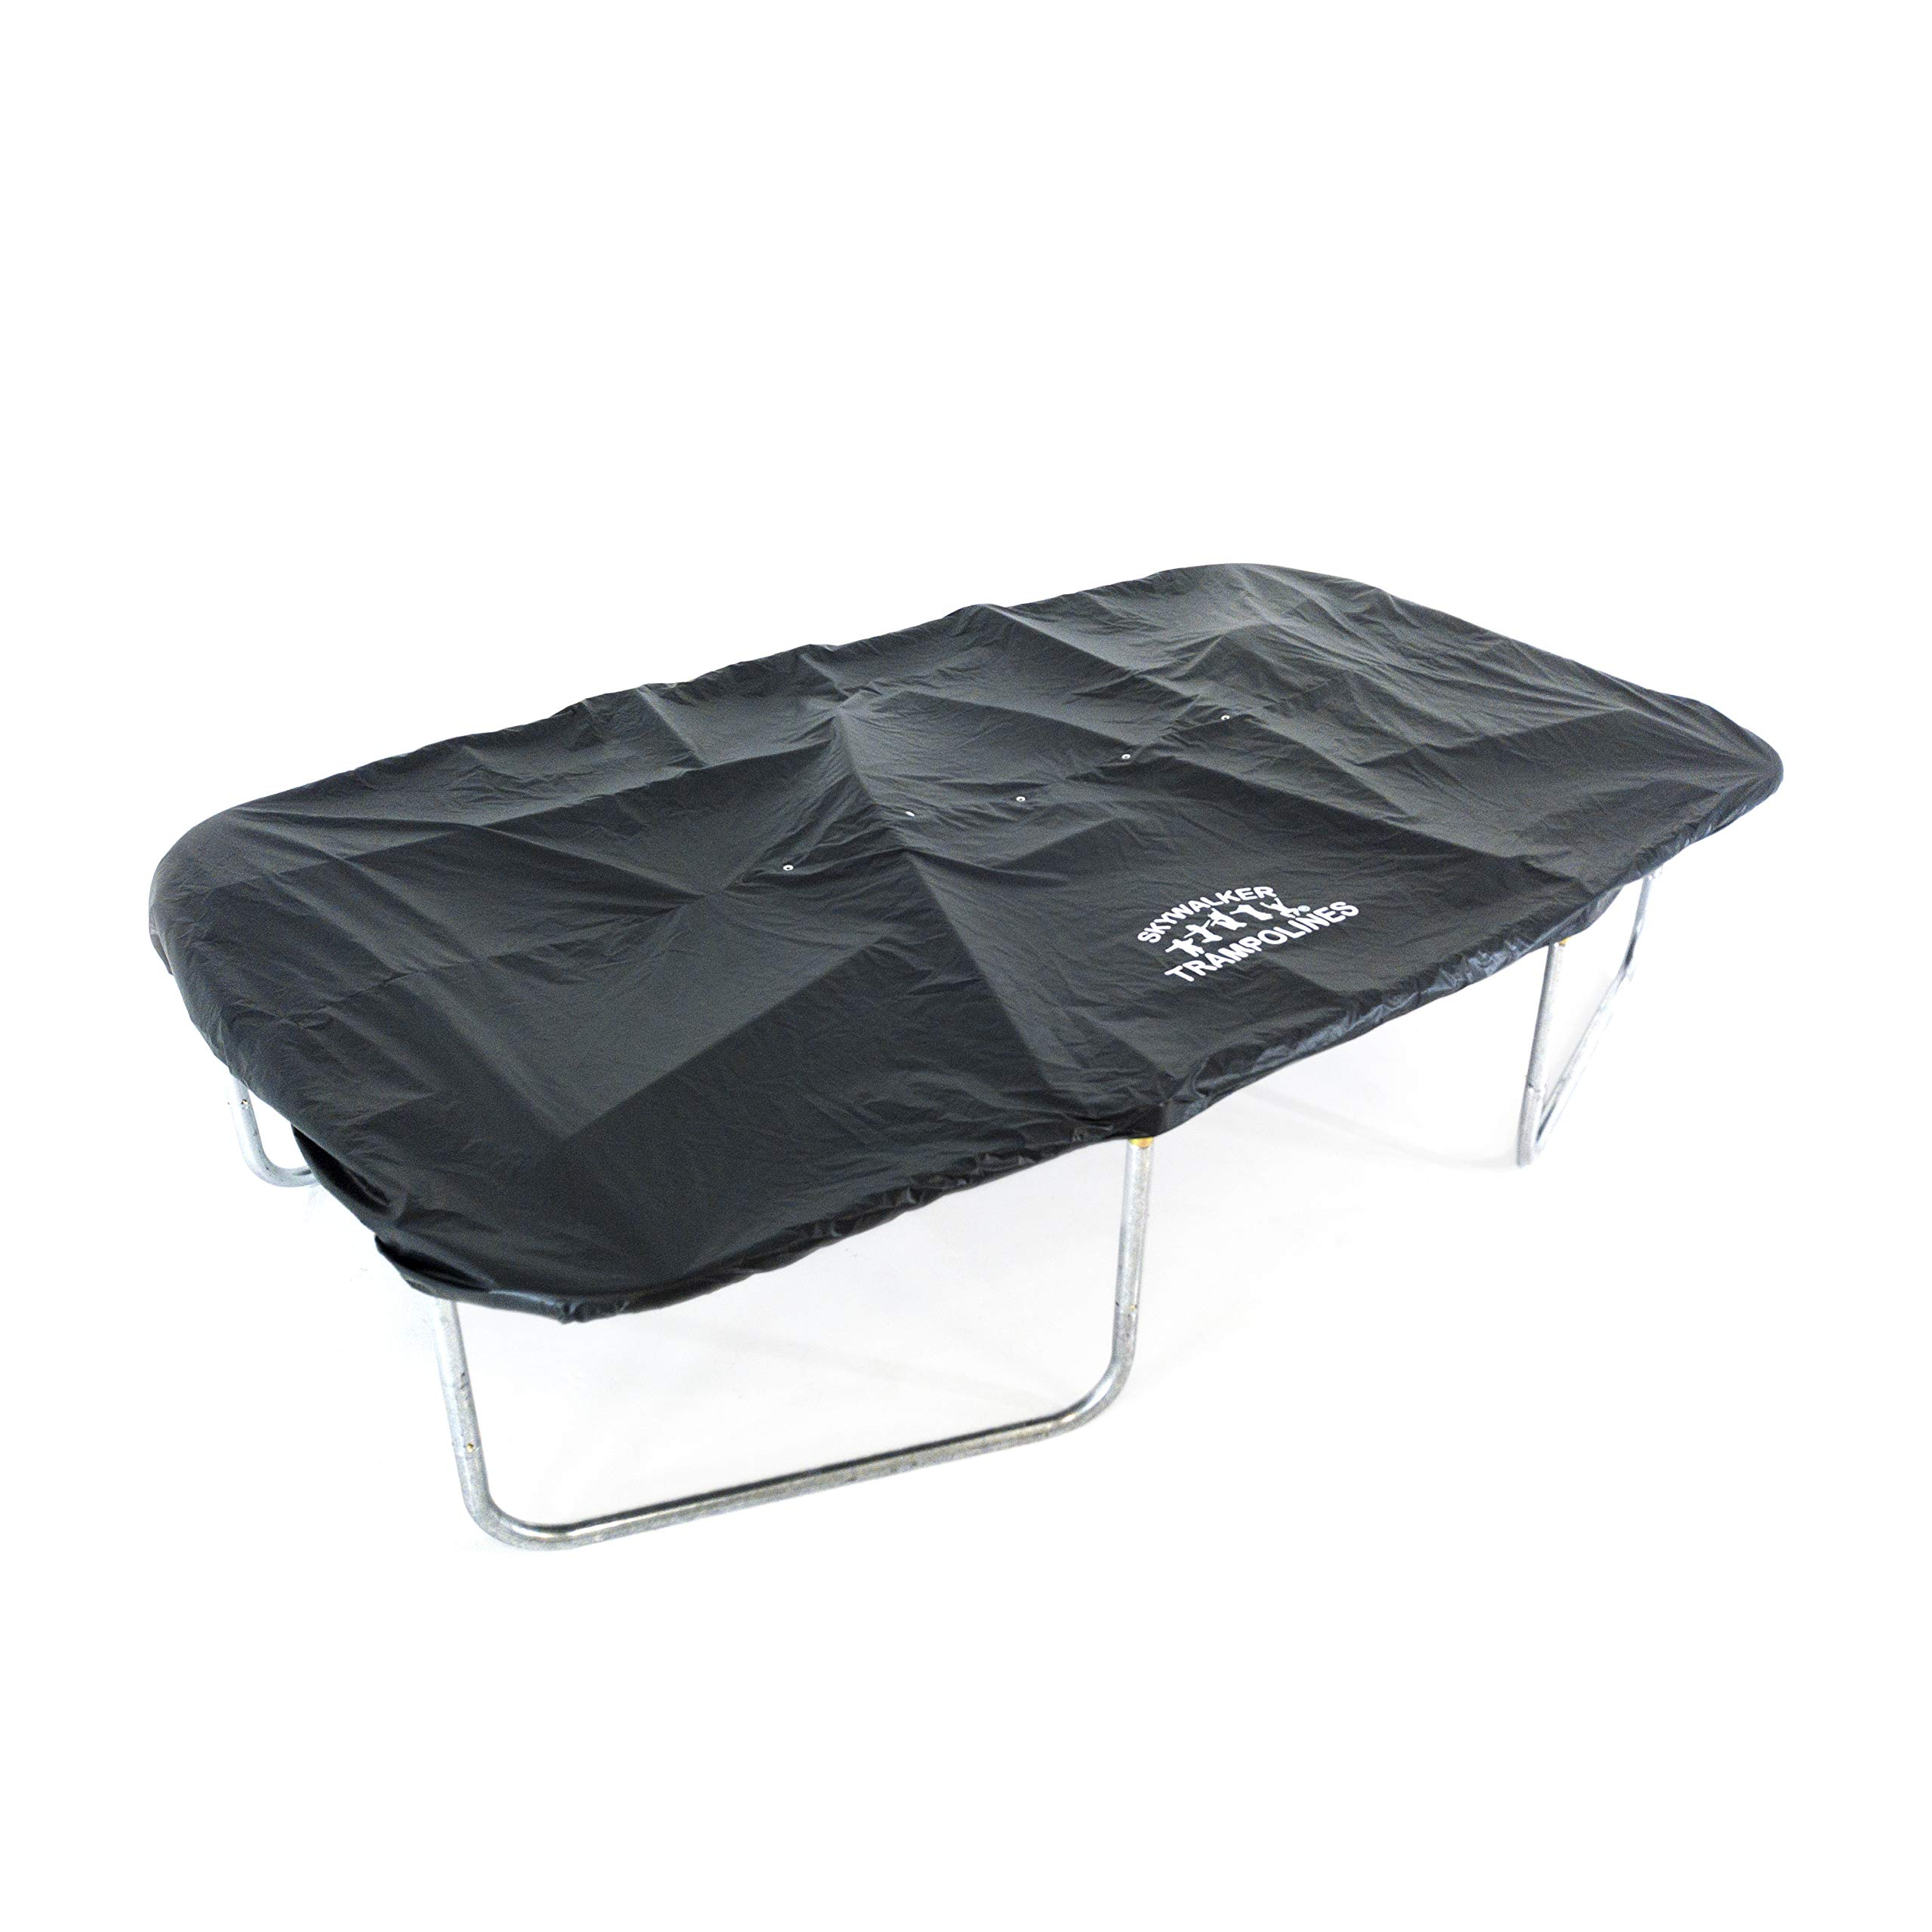 Skywalker Trampolines Accessory Weather Cover - 15' Rectangle by Skywalker Trampolines